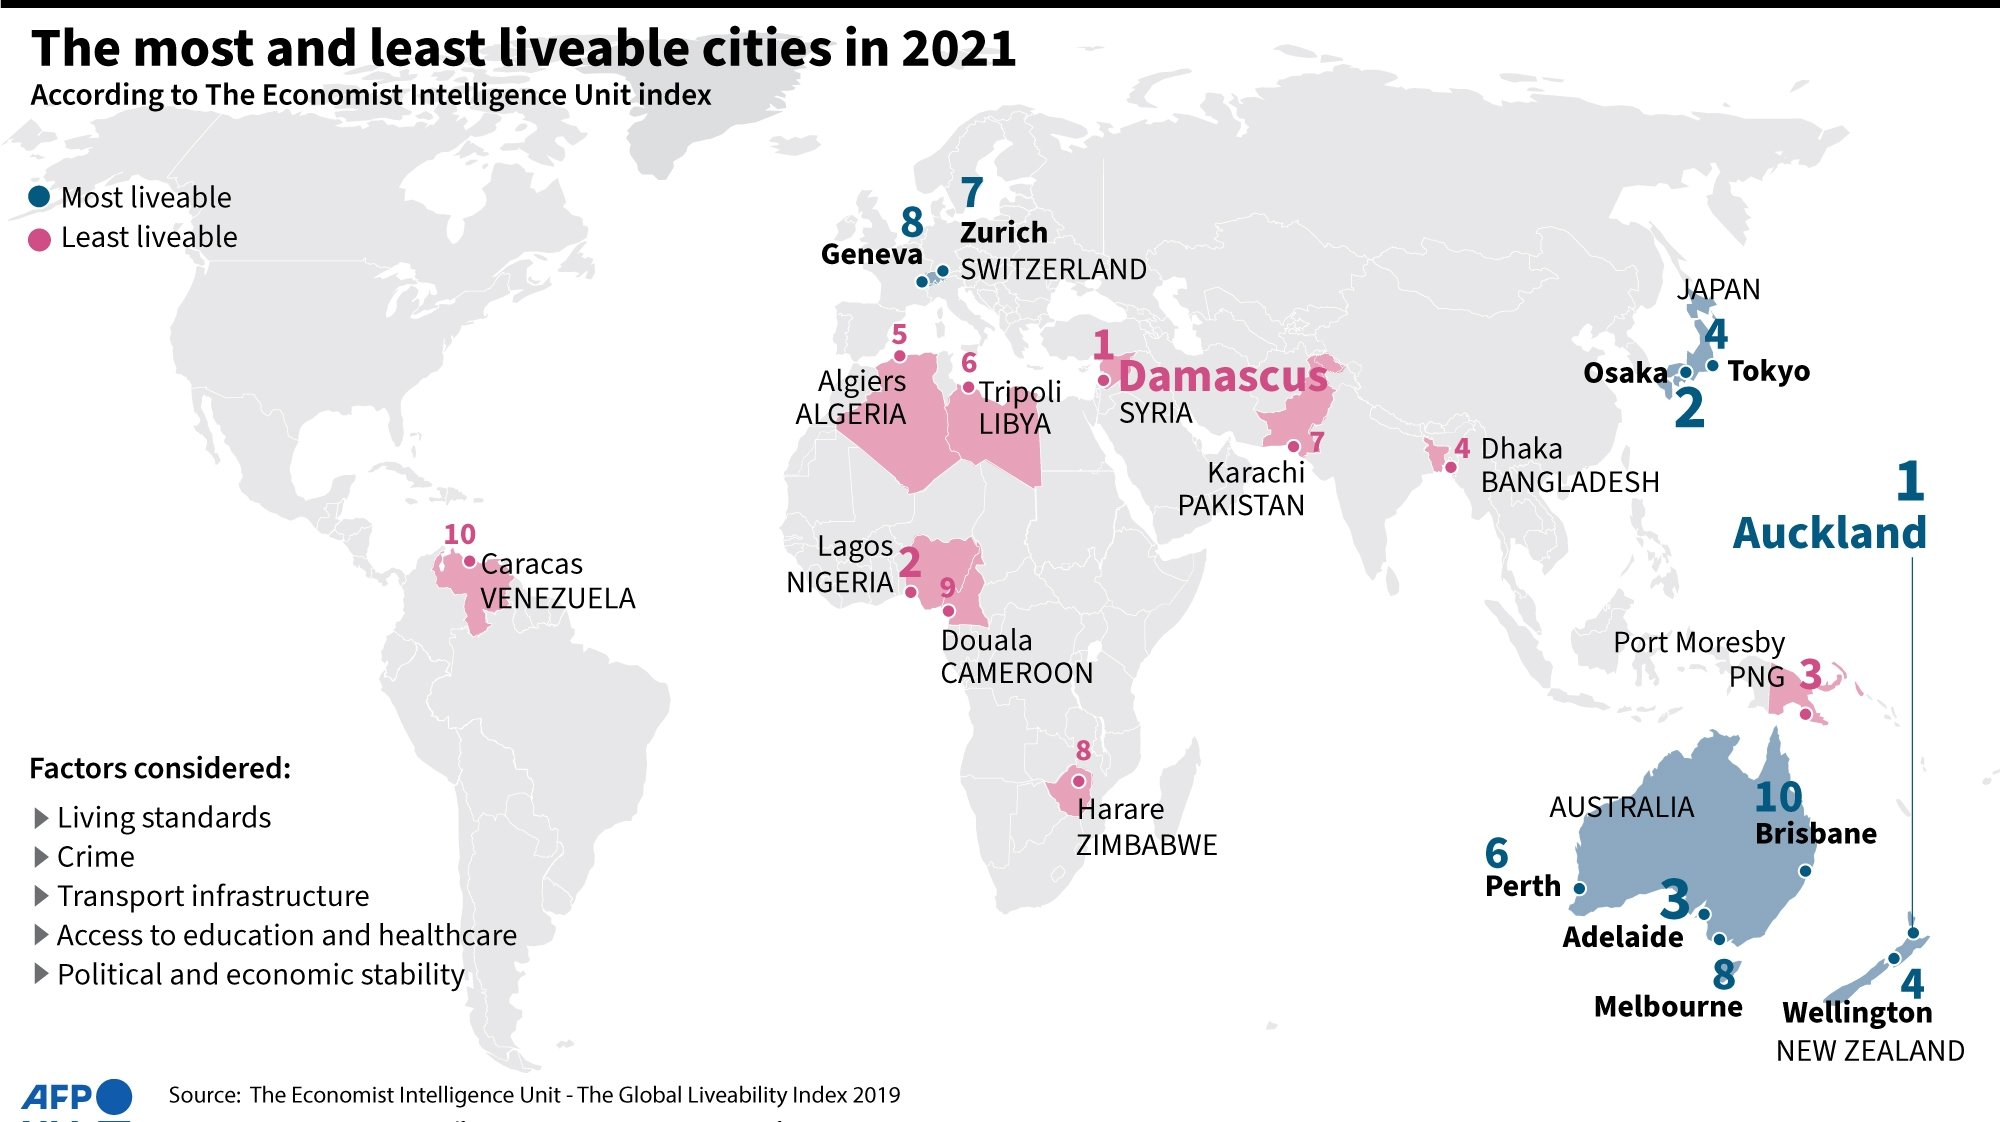 An infographic showing the 10 most livable and 10 least livable cities according to the 2021 edition of Economist Intelligence Unit's 'Global Liveability Index.' (AFP)